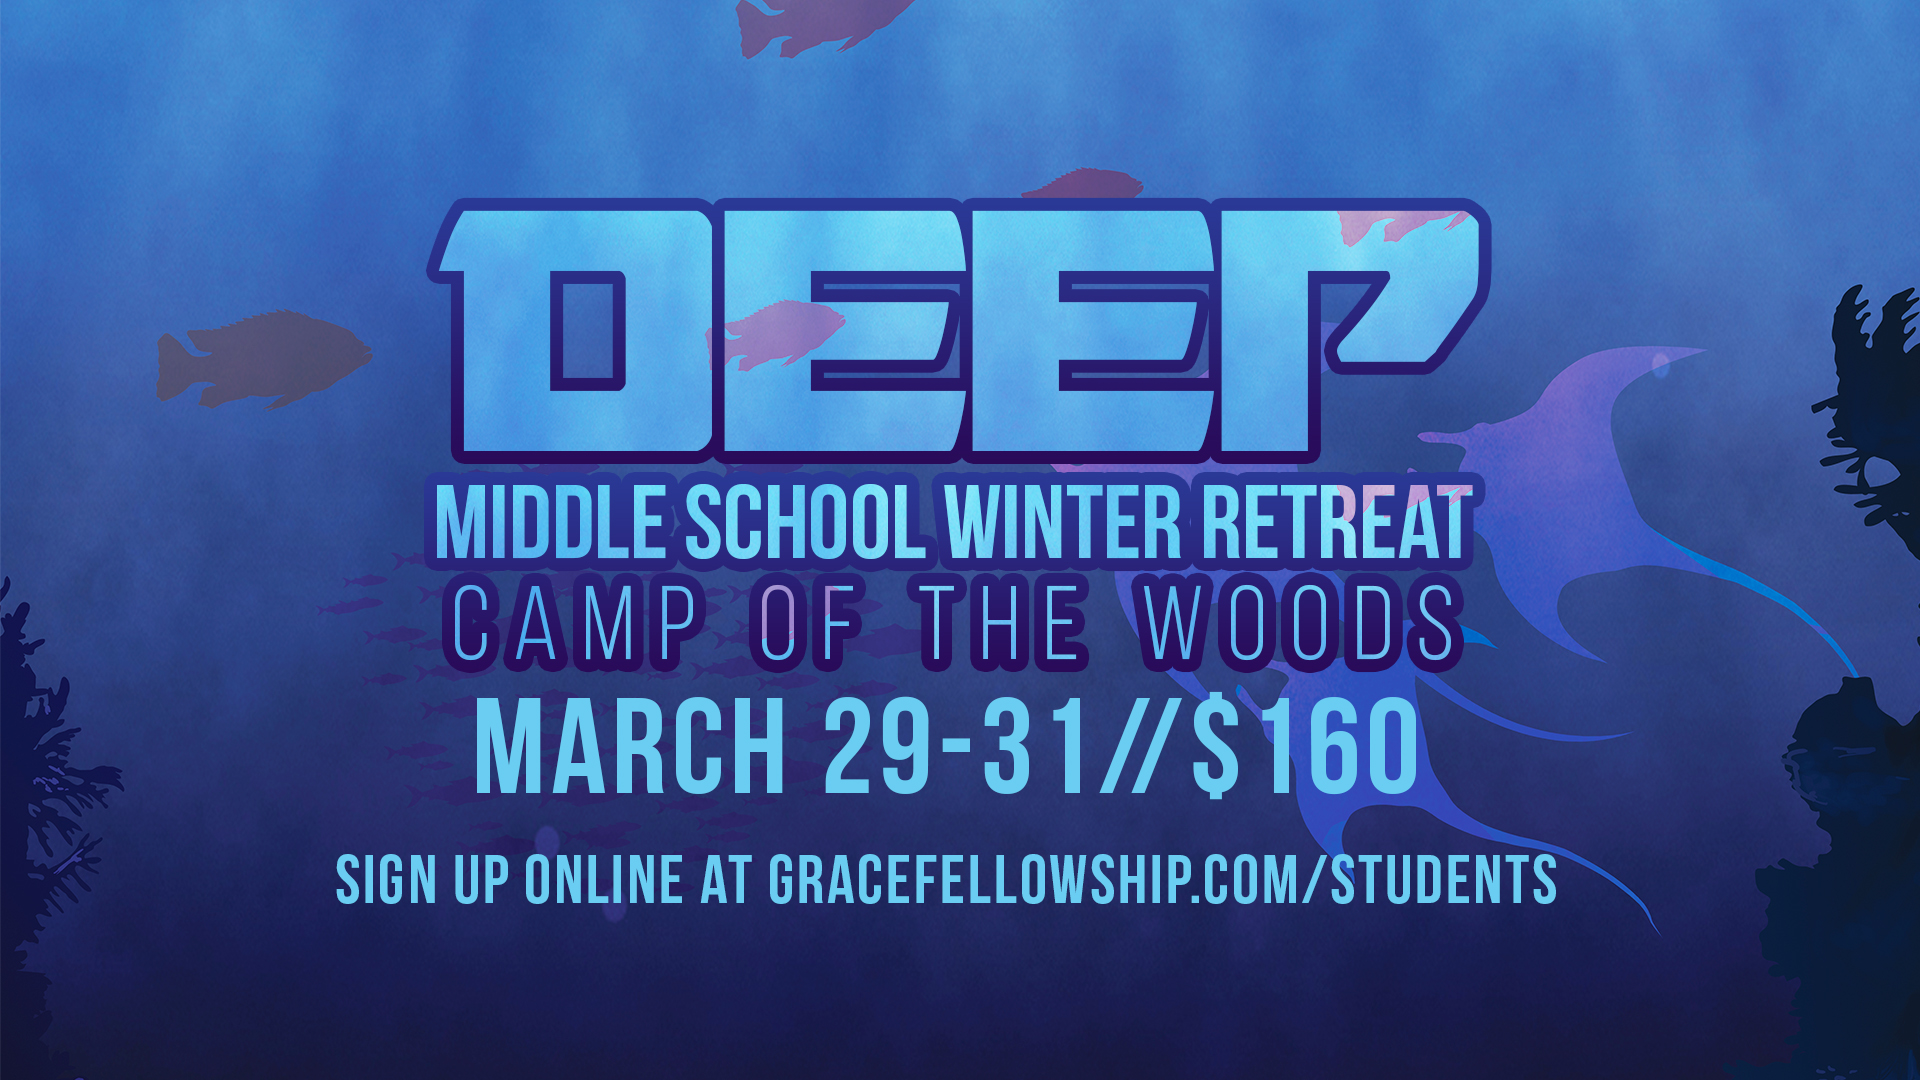 Middle School Winter Retreat